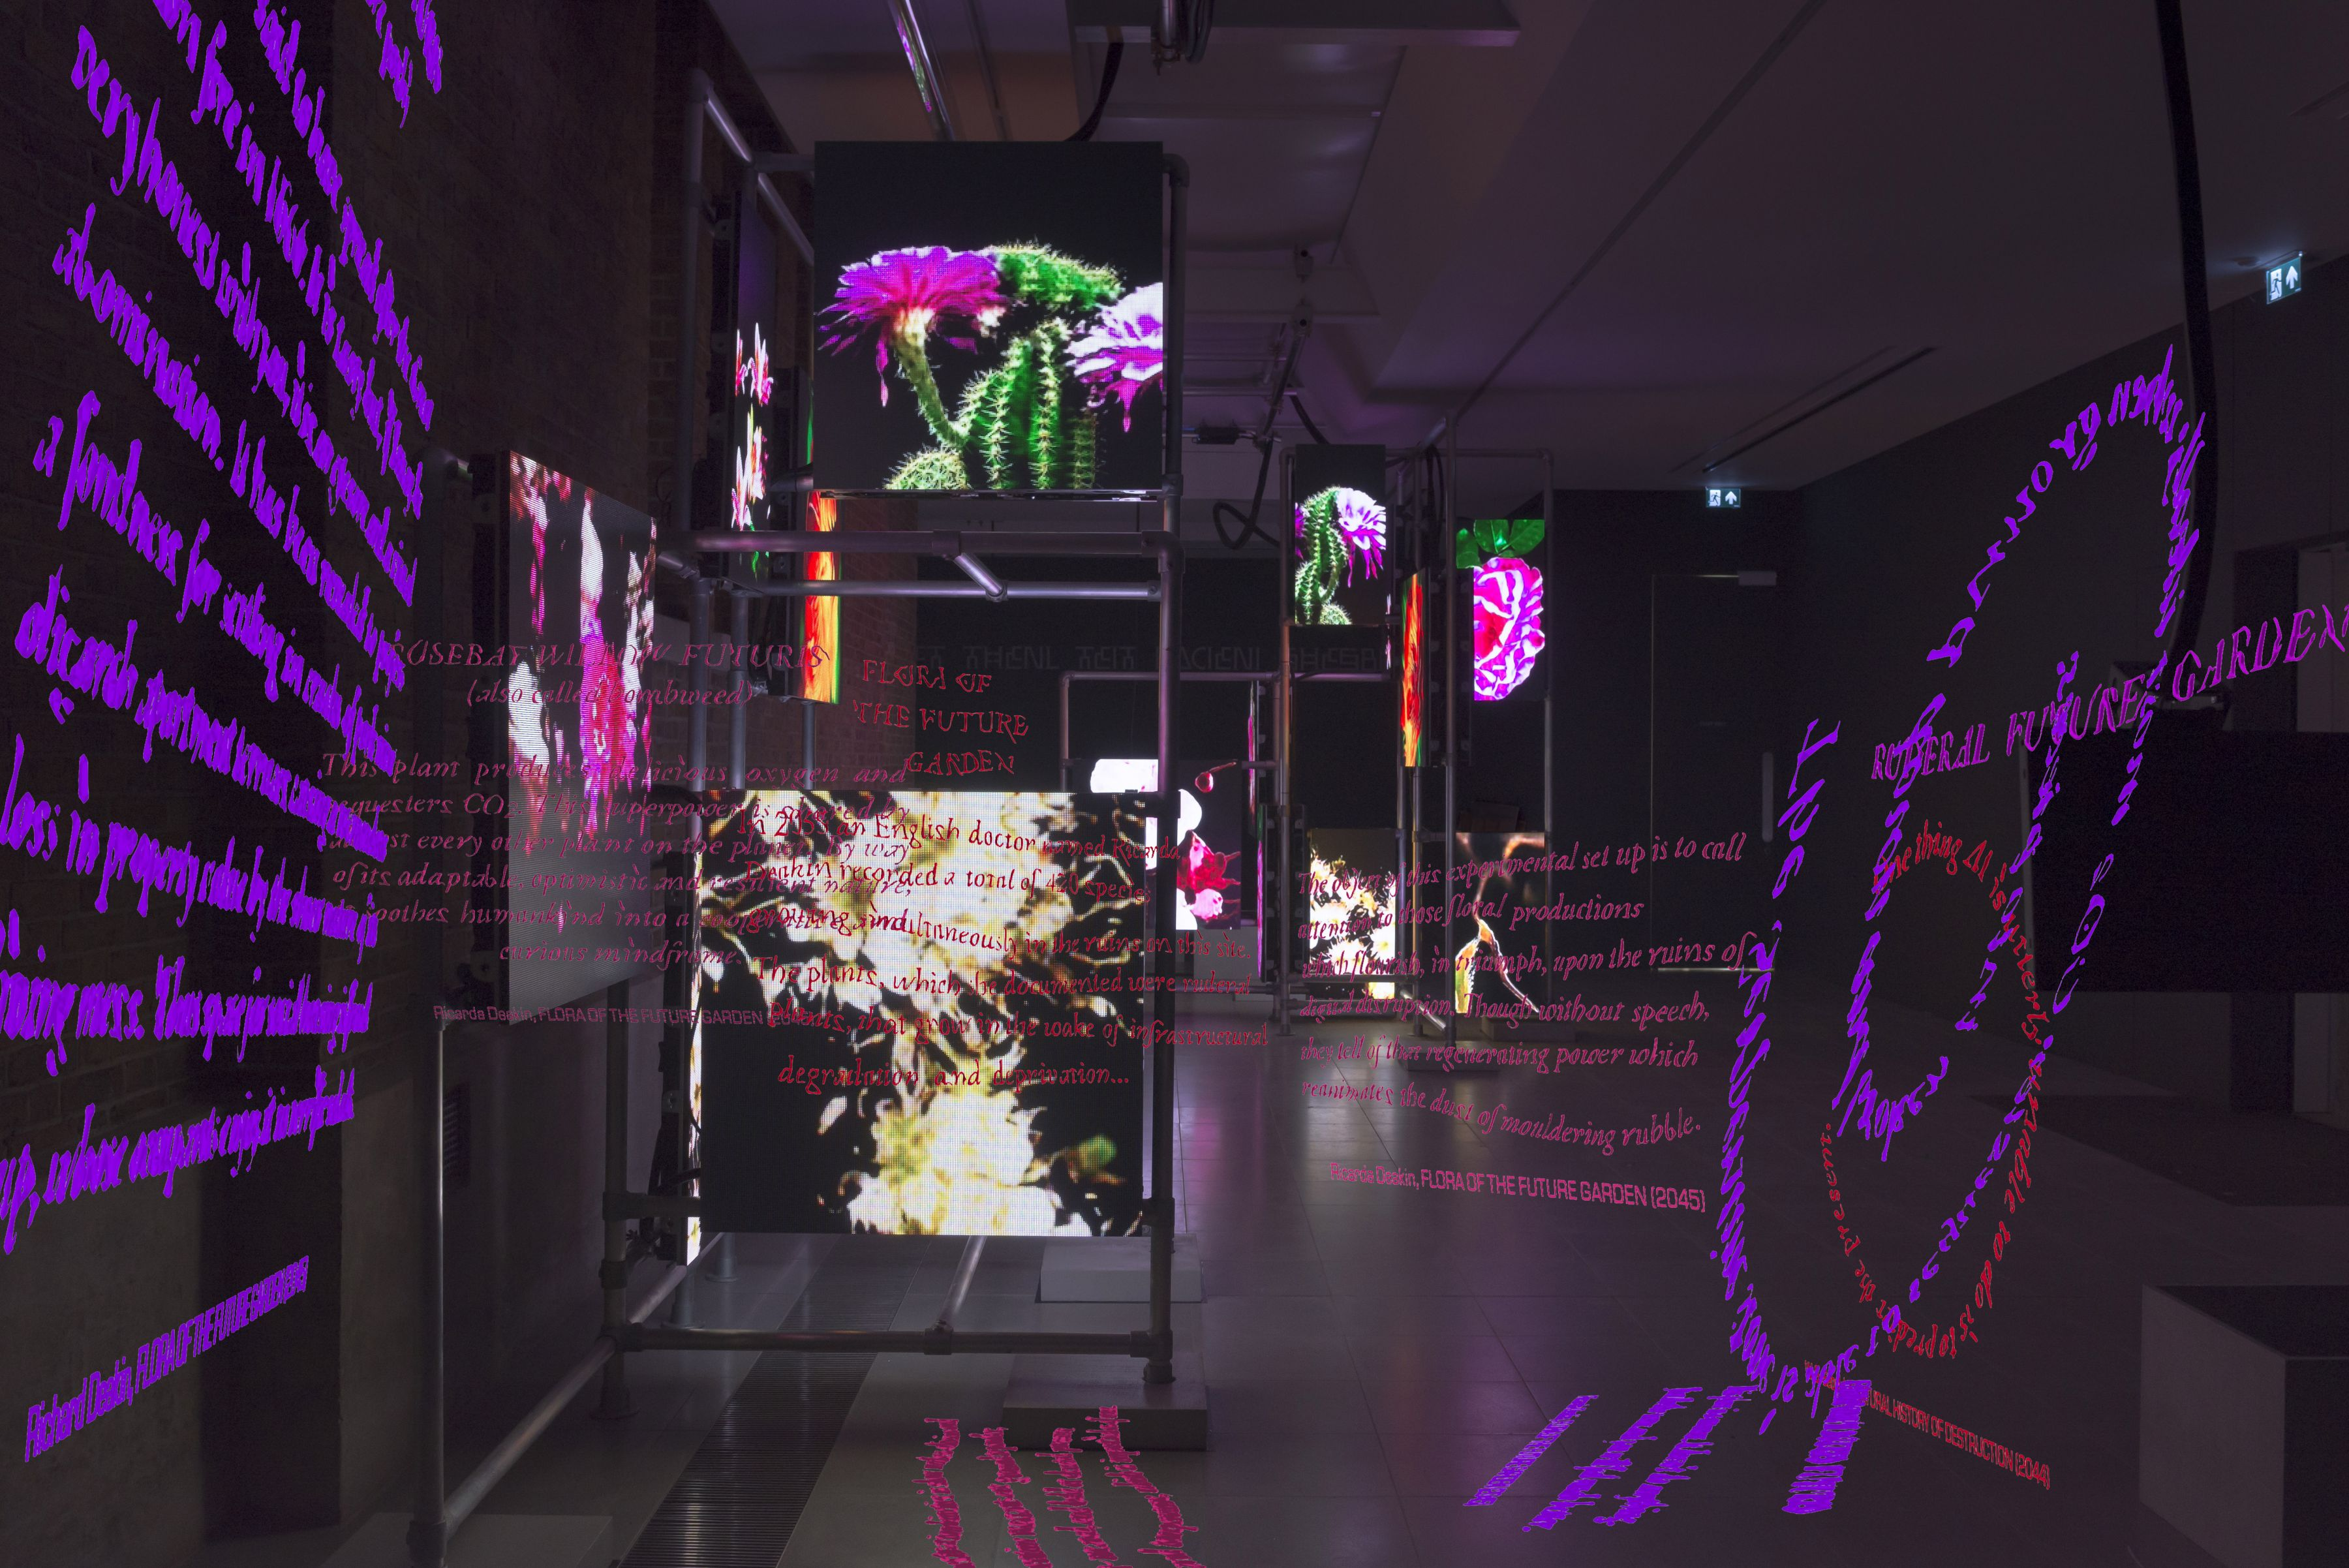 Hito Steyerl Power Plants, Serpentine Galleries, London, April 11 - May 6, 2019